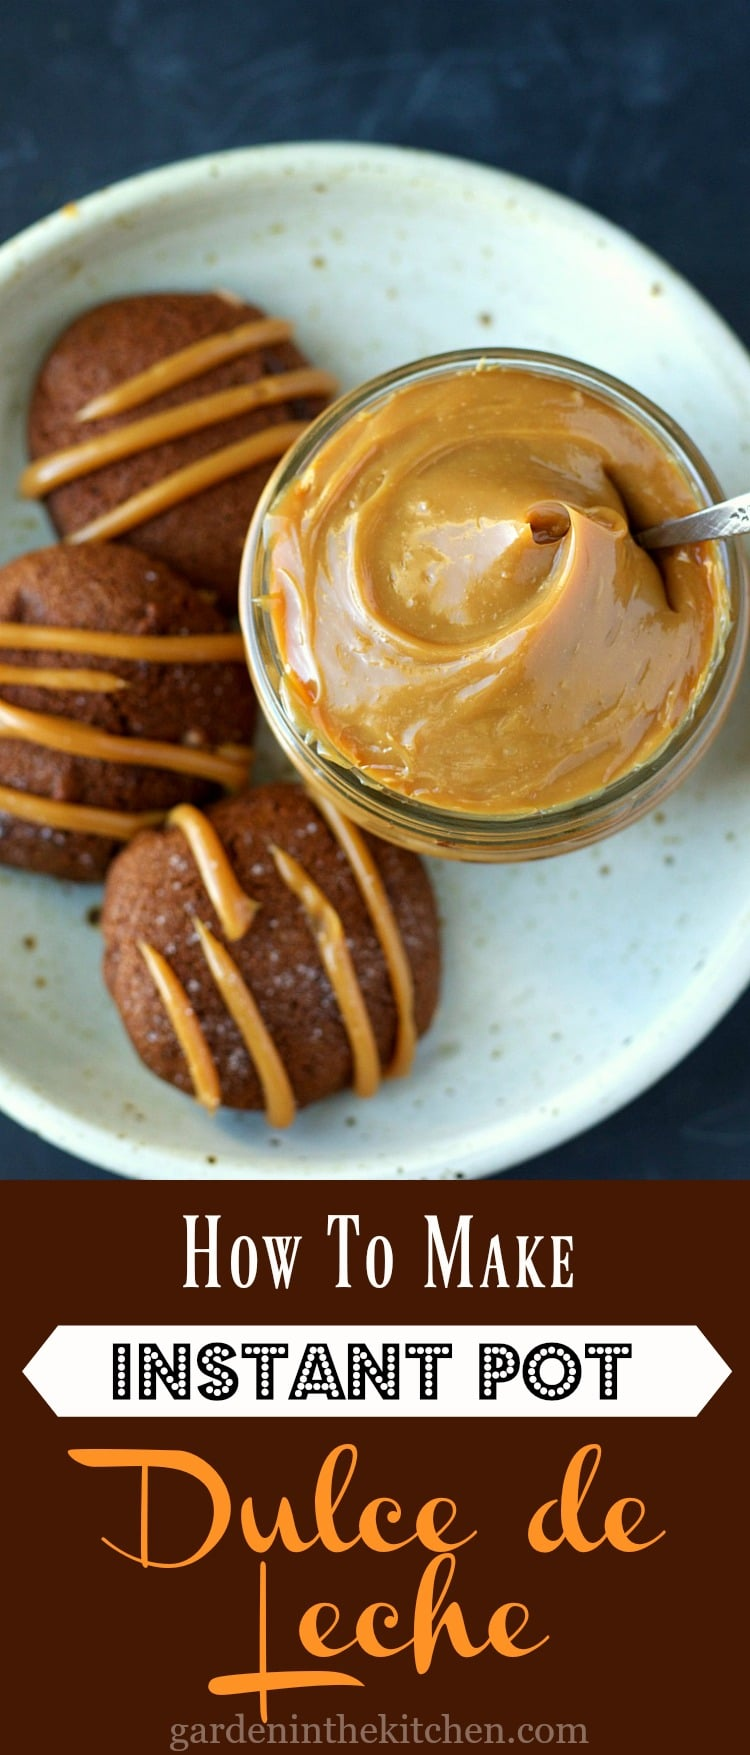 How To Make Instant Pot Dulce de Leche | Garden in the Kitchen